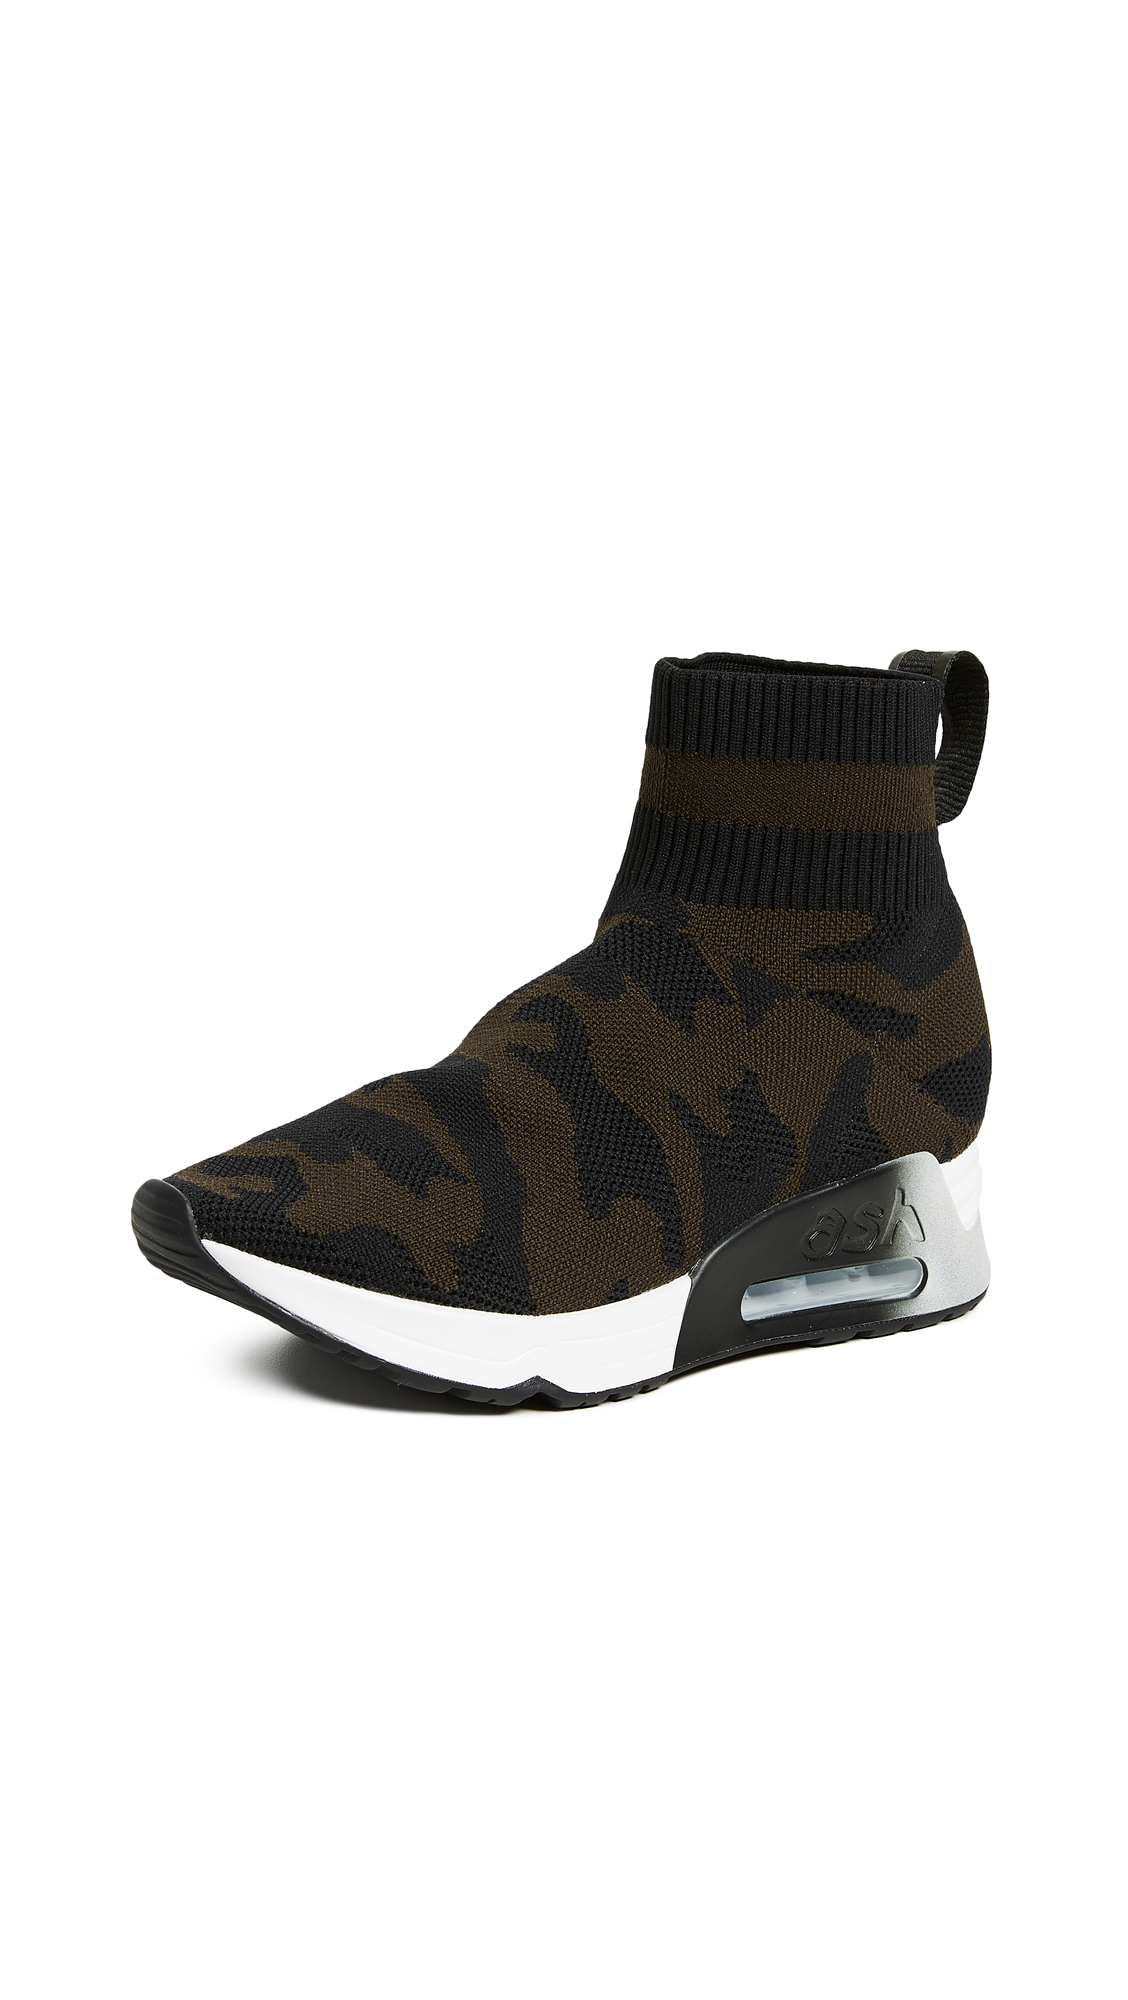 Ash Lulu Camo Knit Runner Sneakers - Black/Military